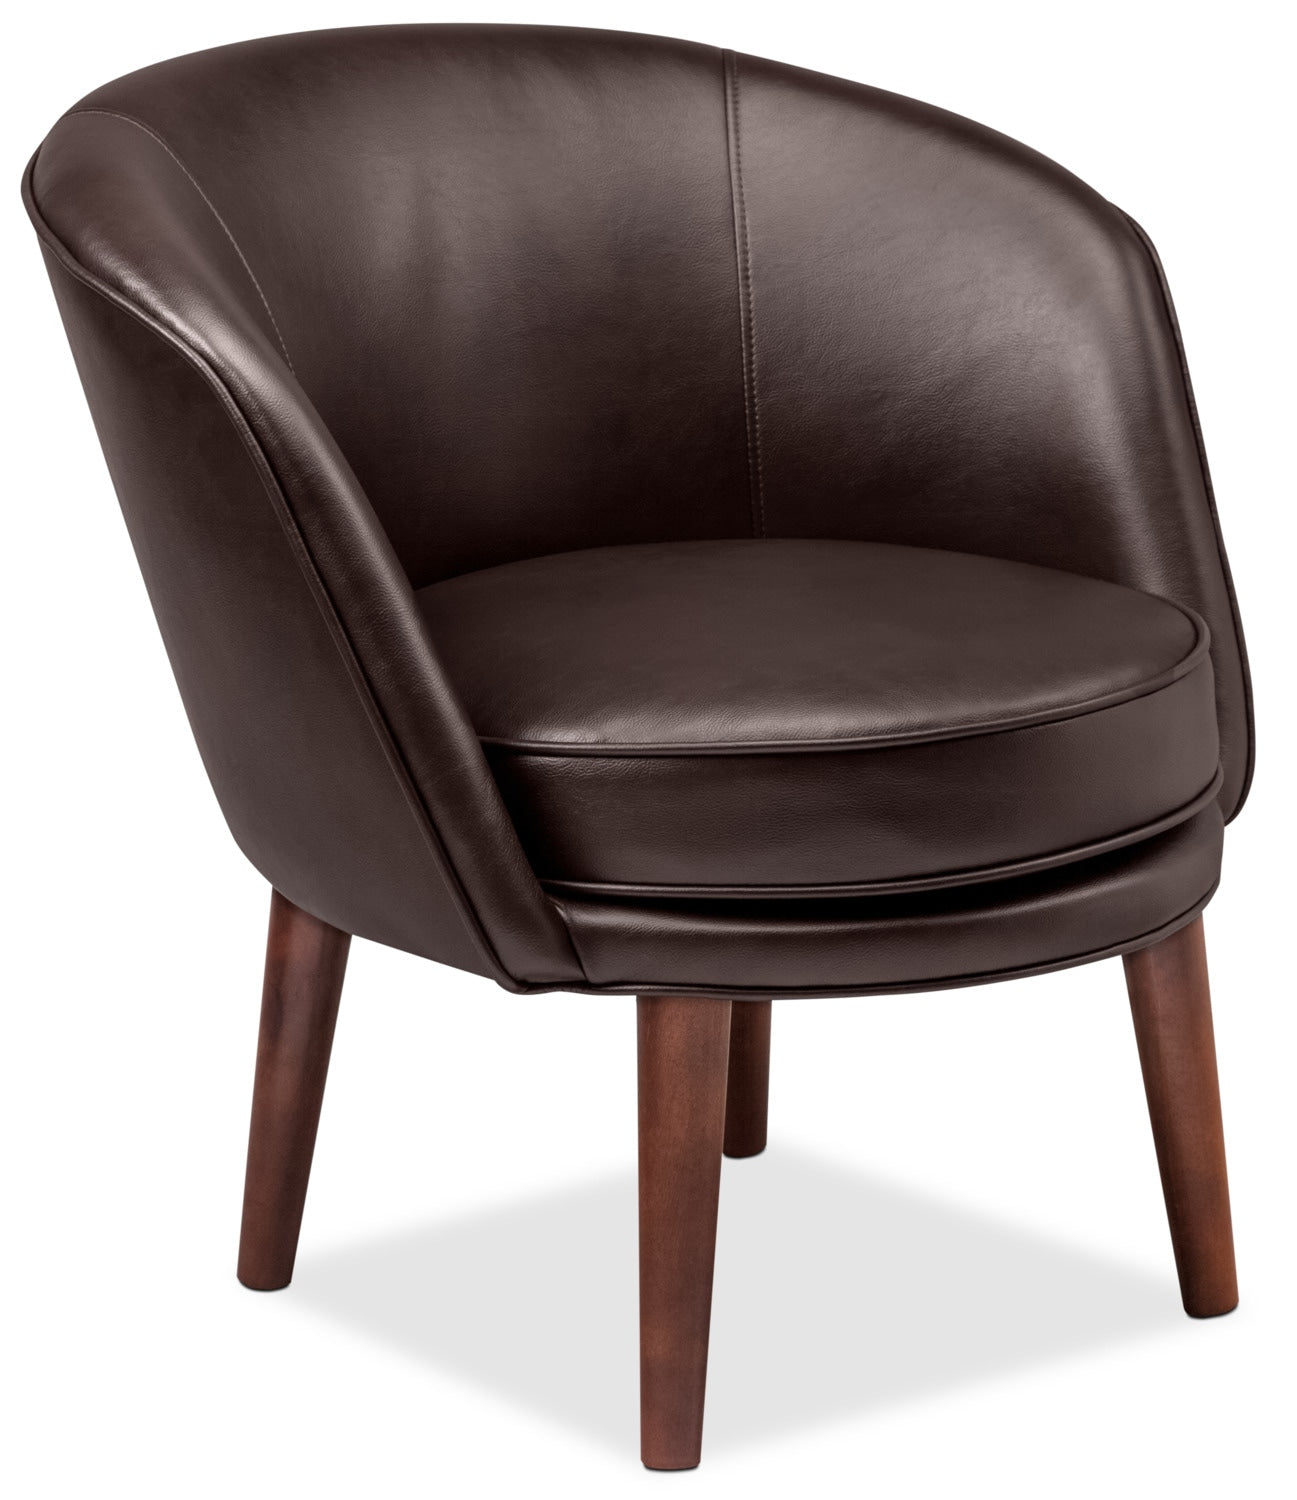 Franz Leather-Look Fabric Accent Chair – Brown